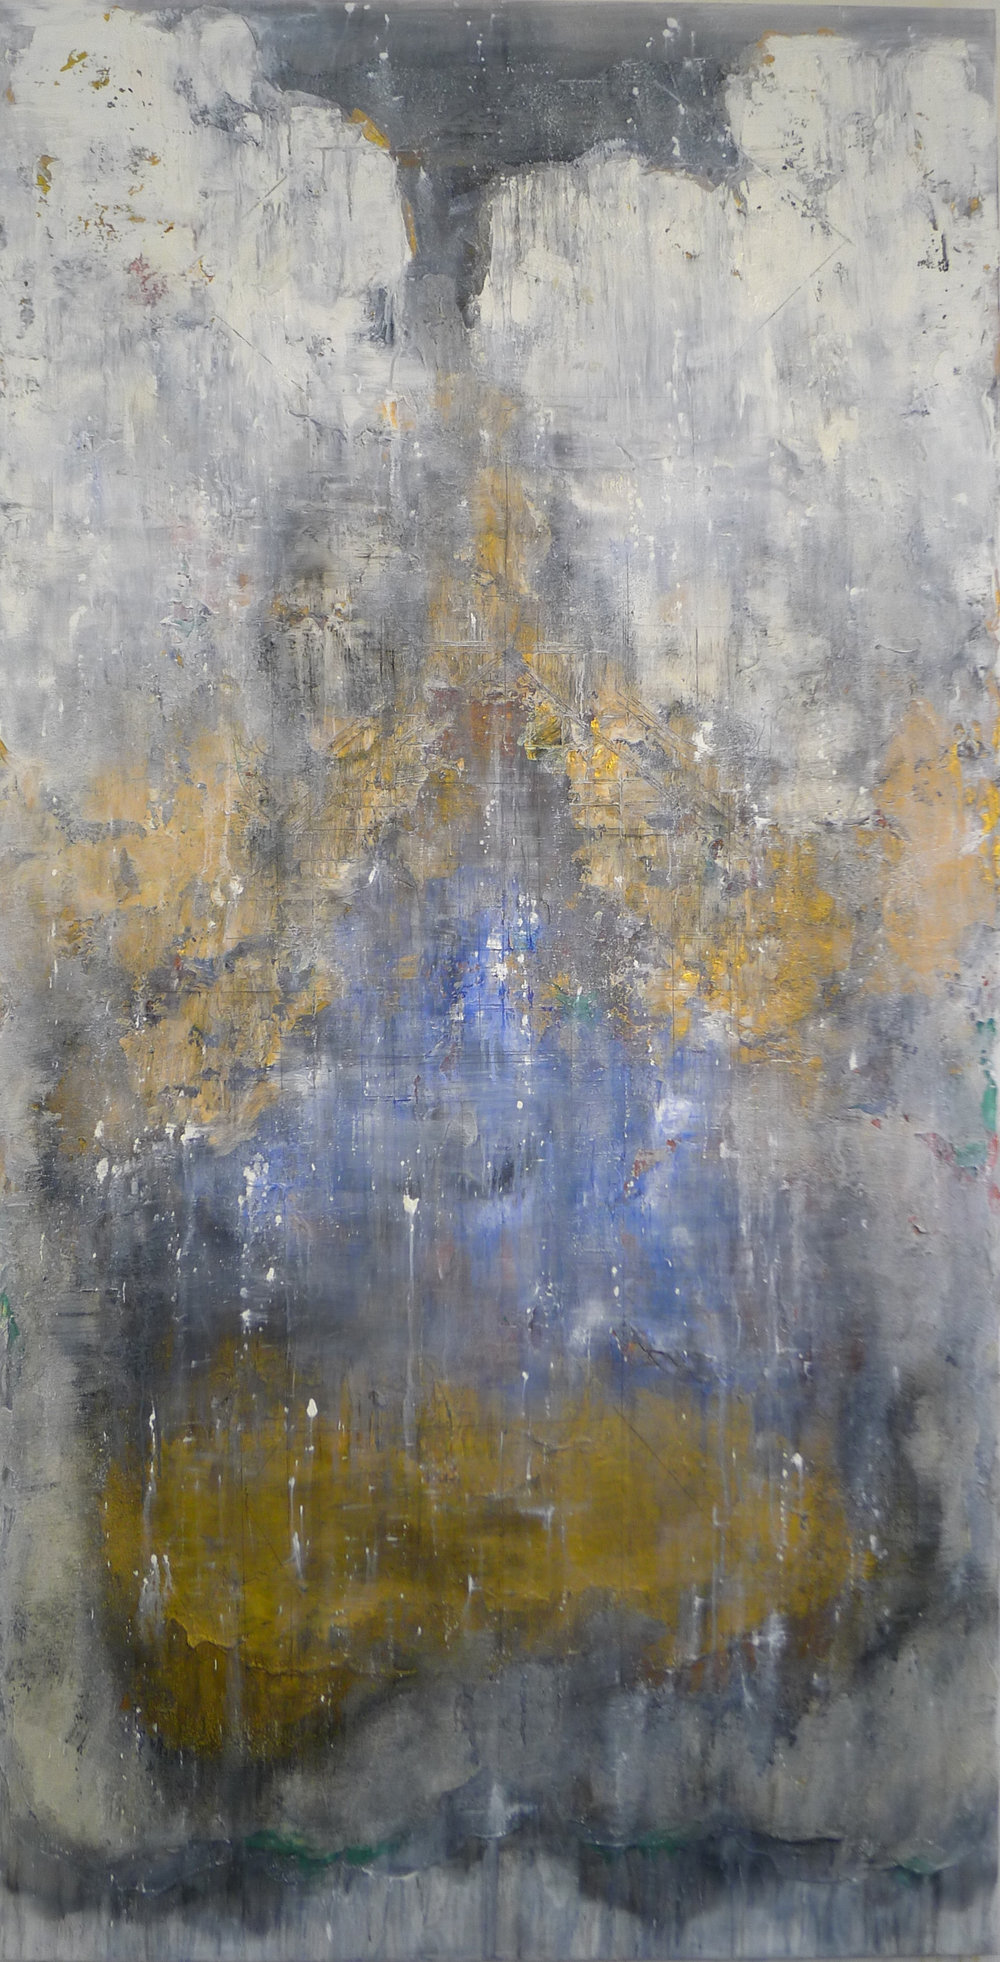 The Golden Light #8 , 2016, Oil, Acrylic, Acrylic Medium and Charcoal on Canvas, 195 x 110 cm